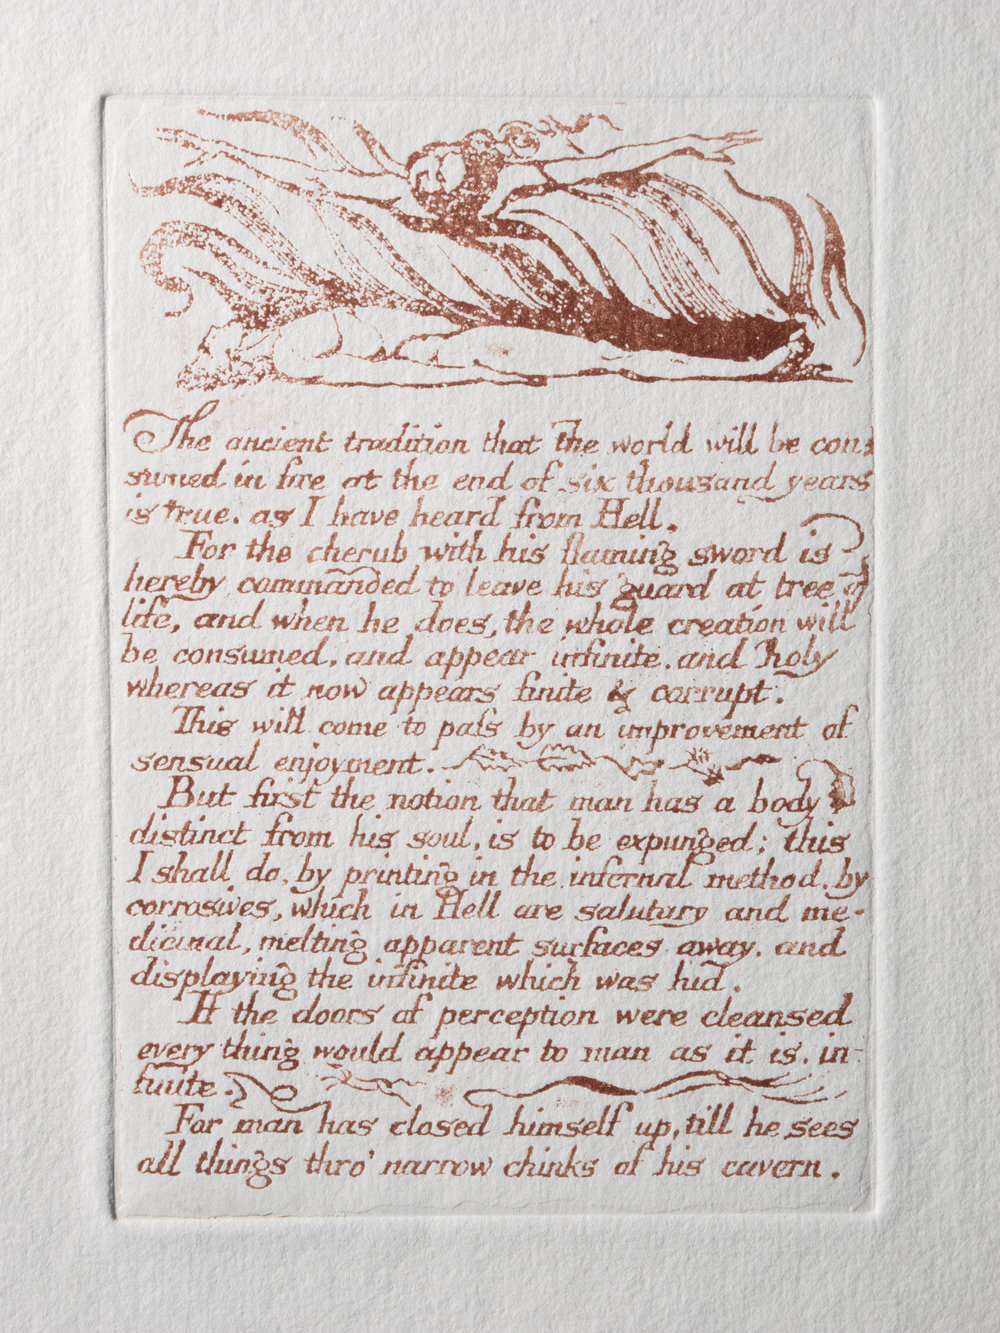 Copy of 'printing in the infernal method'